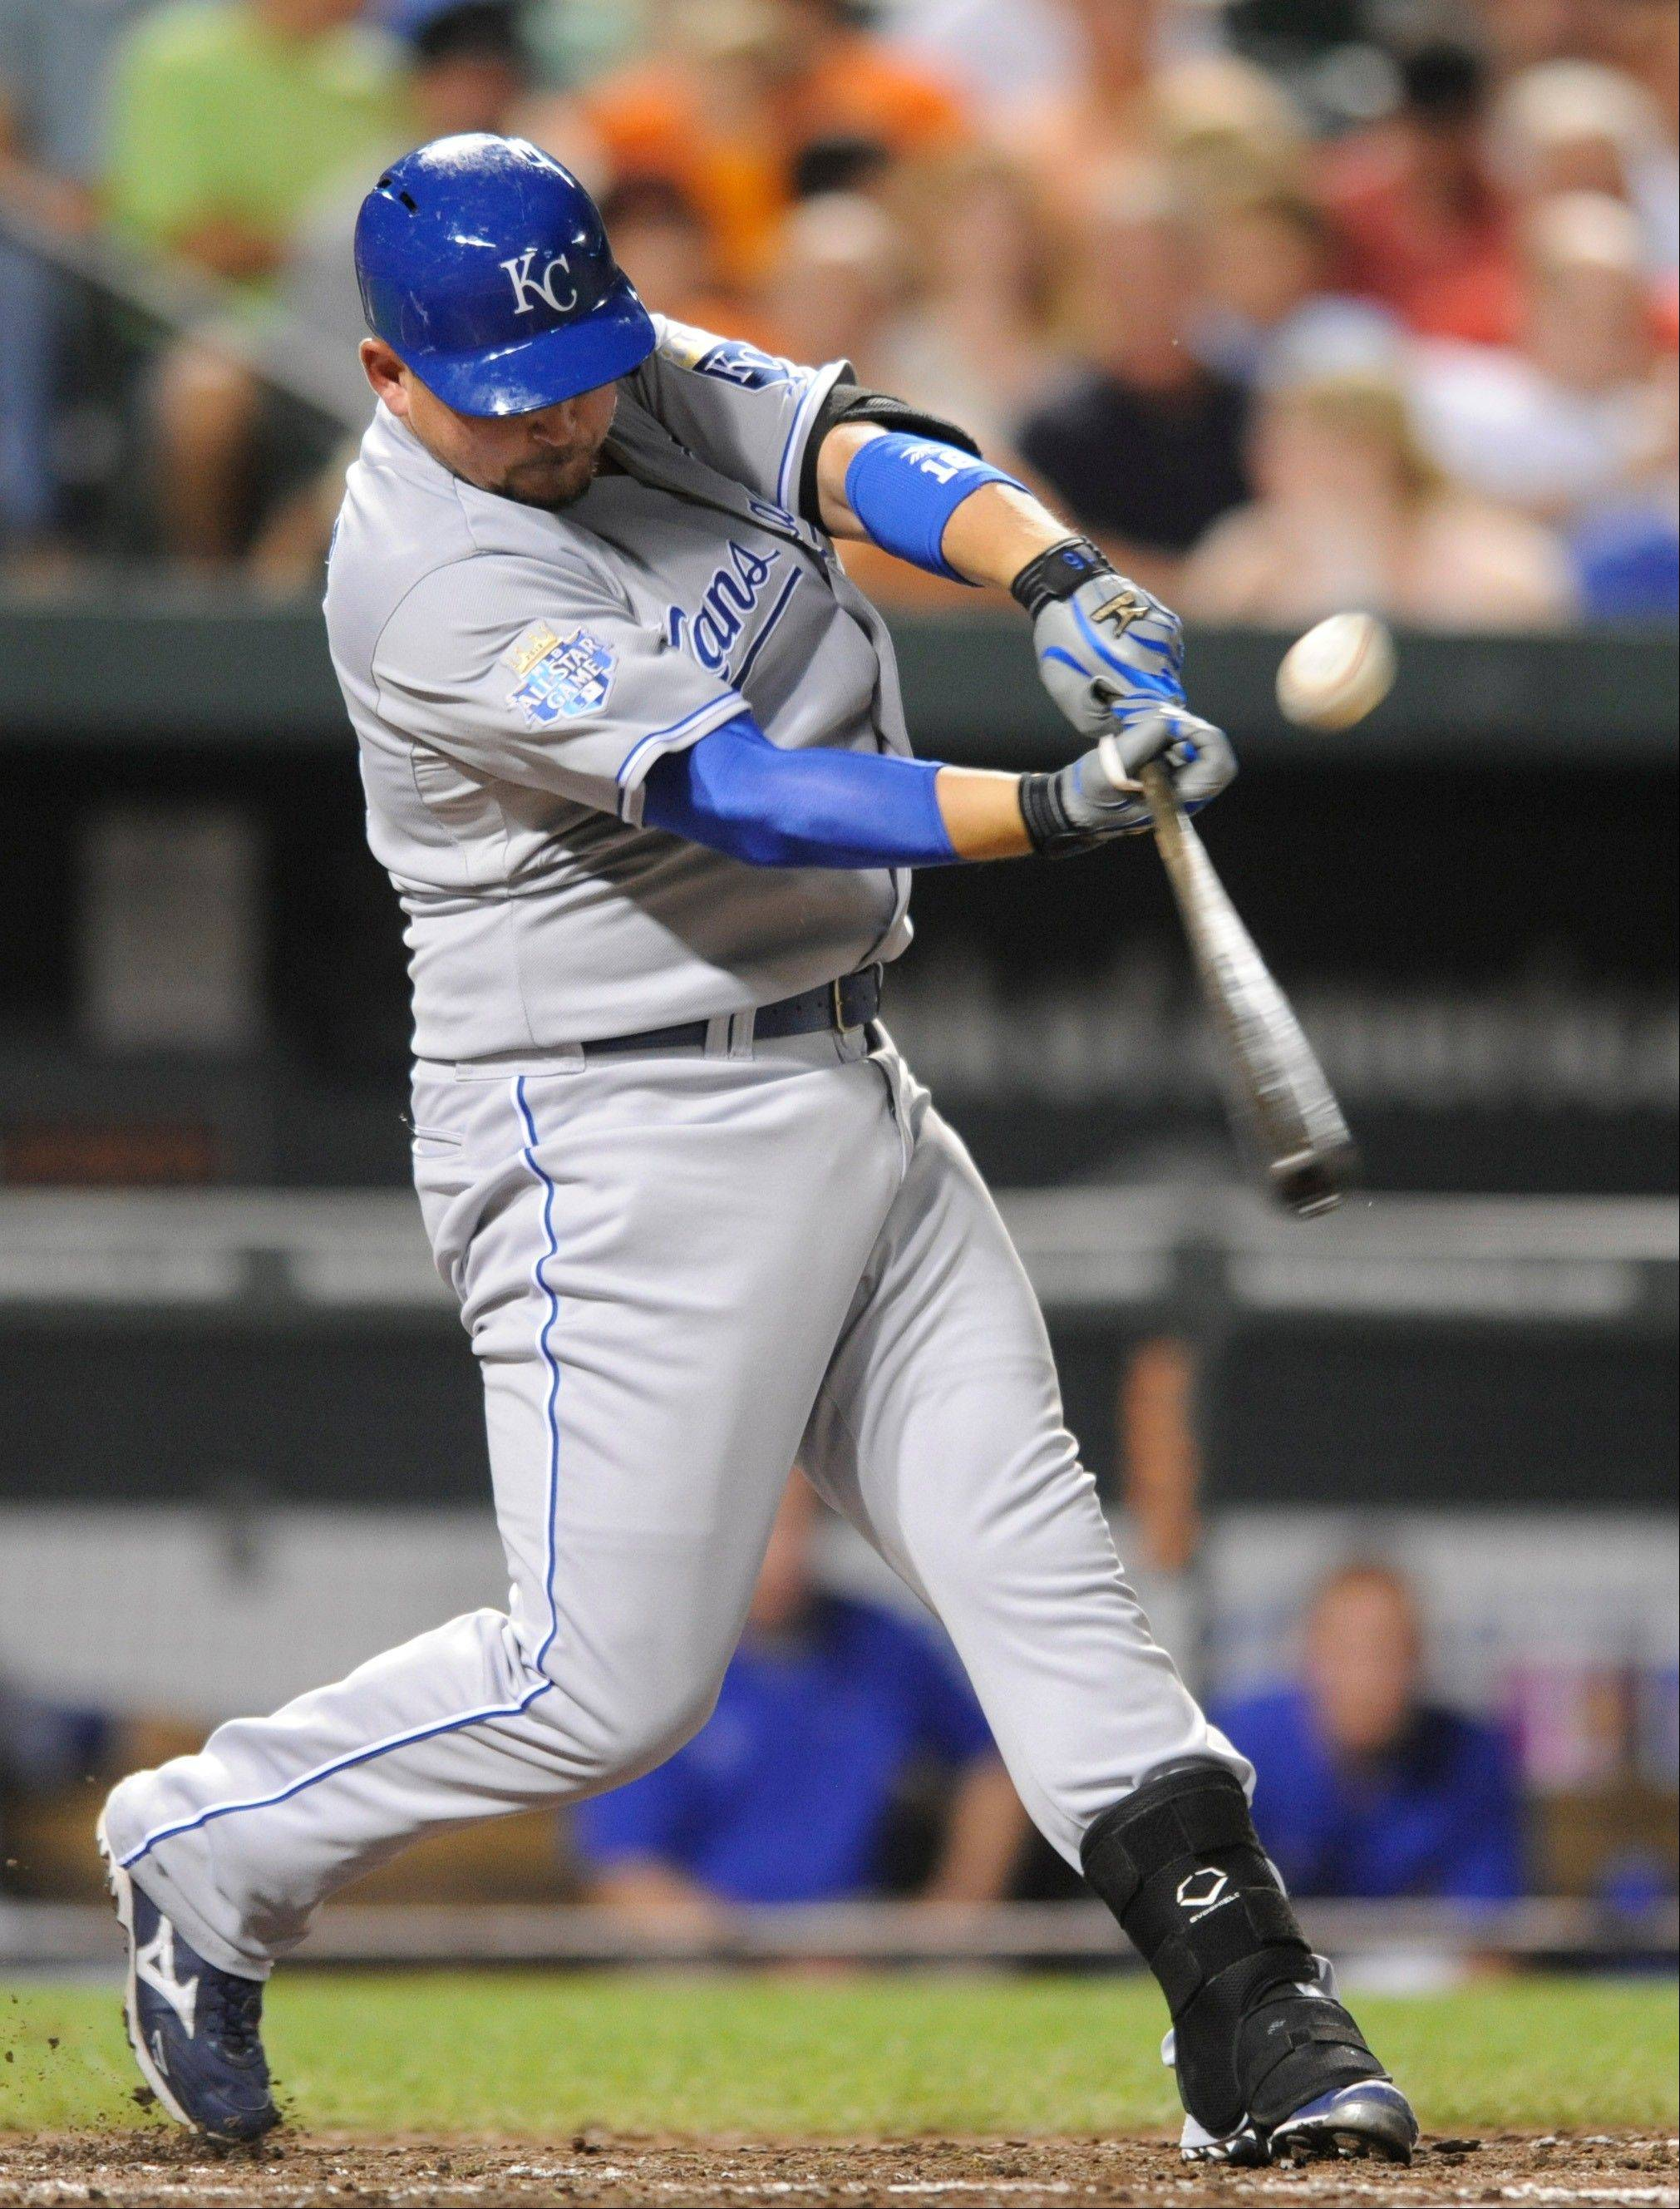 The Royals' Billy Butler connects for a triple in the fifth inning Thursday in Baltimore.